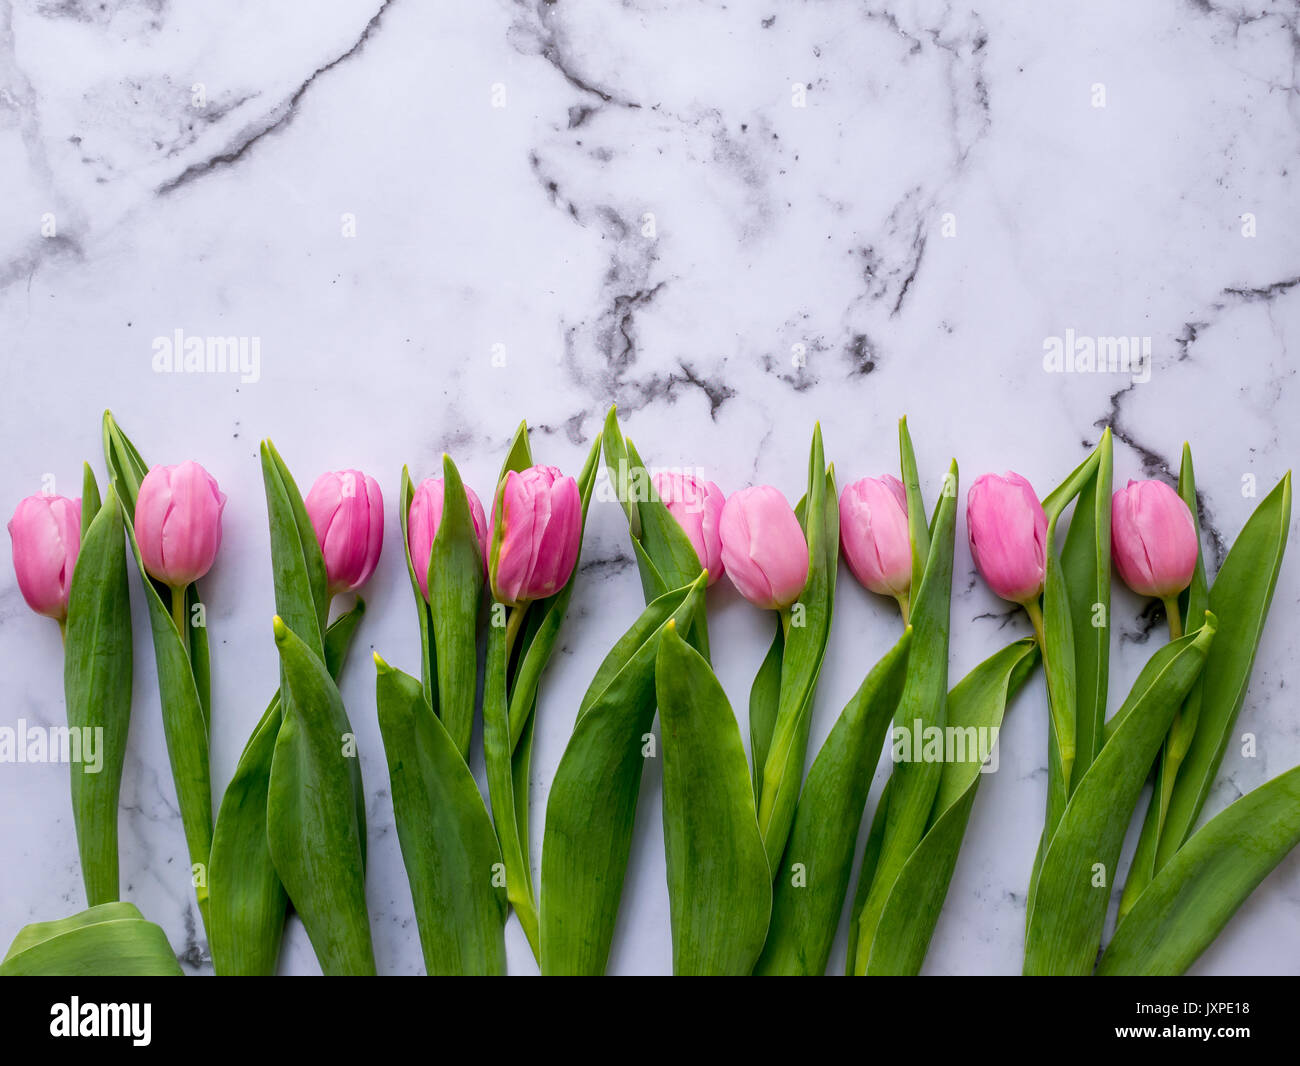 Pink tulips arranged in a line on a marble table. Flat lay. Landscape format. - Stock Image